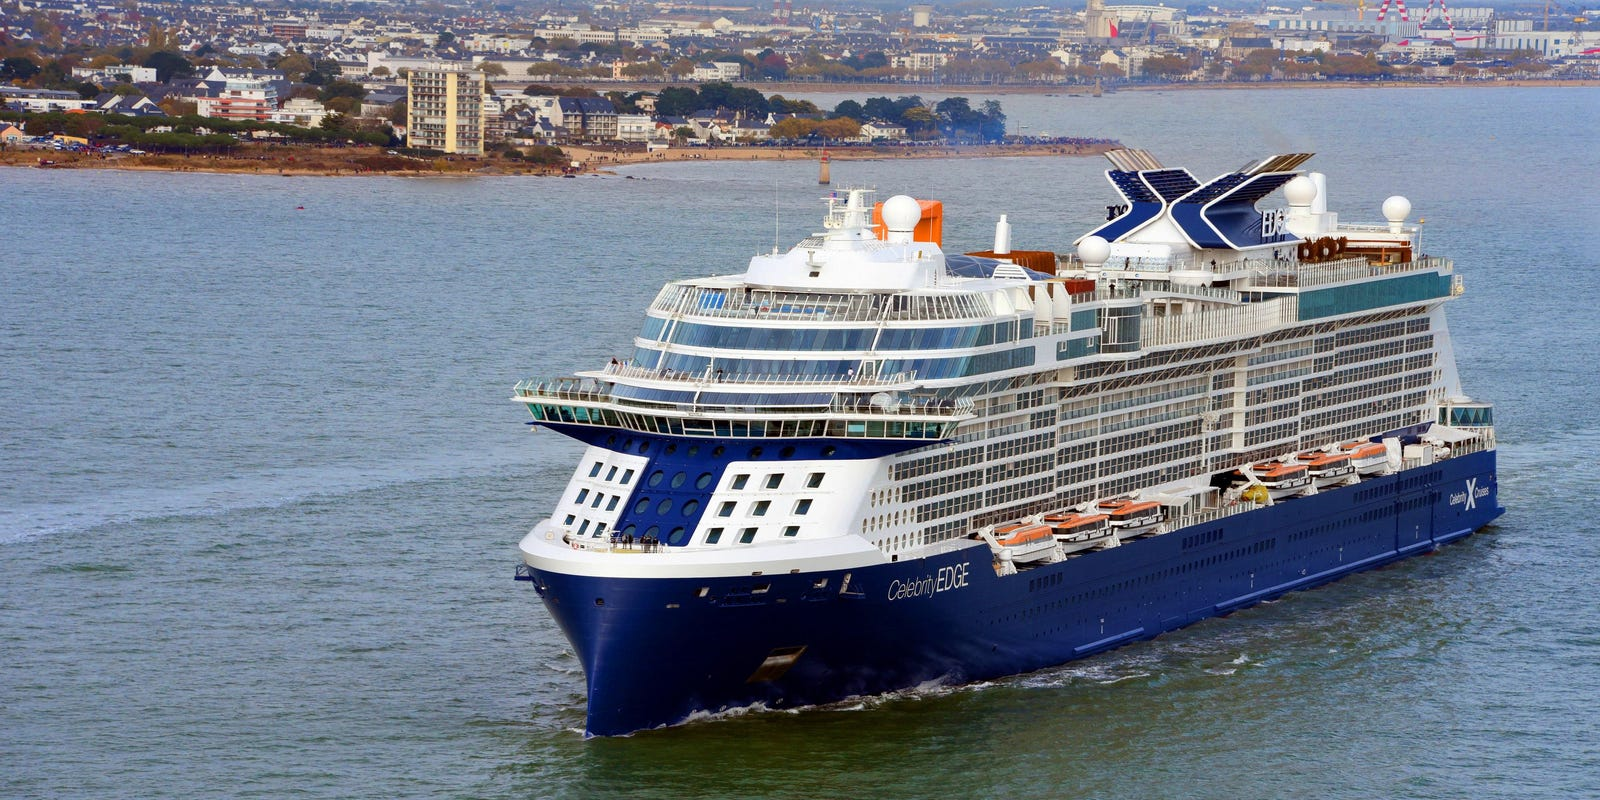 Celebrity Cruises drops requirement for passengers to show proof of COVID vaccine for Florida cruises